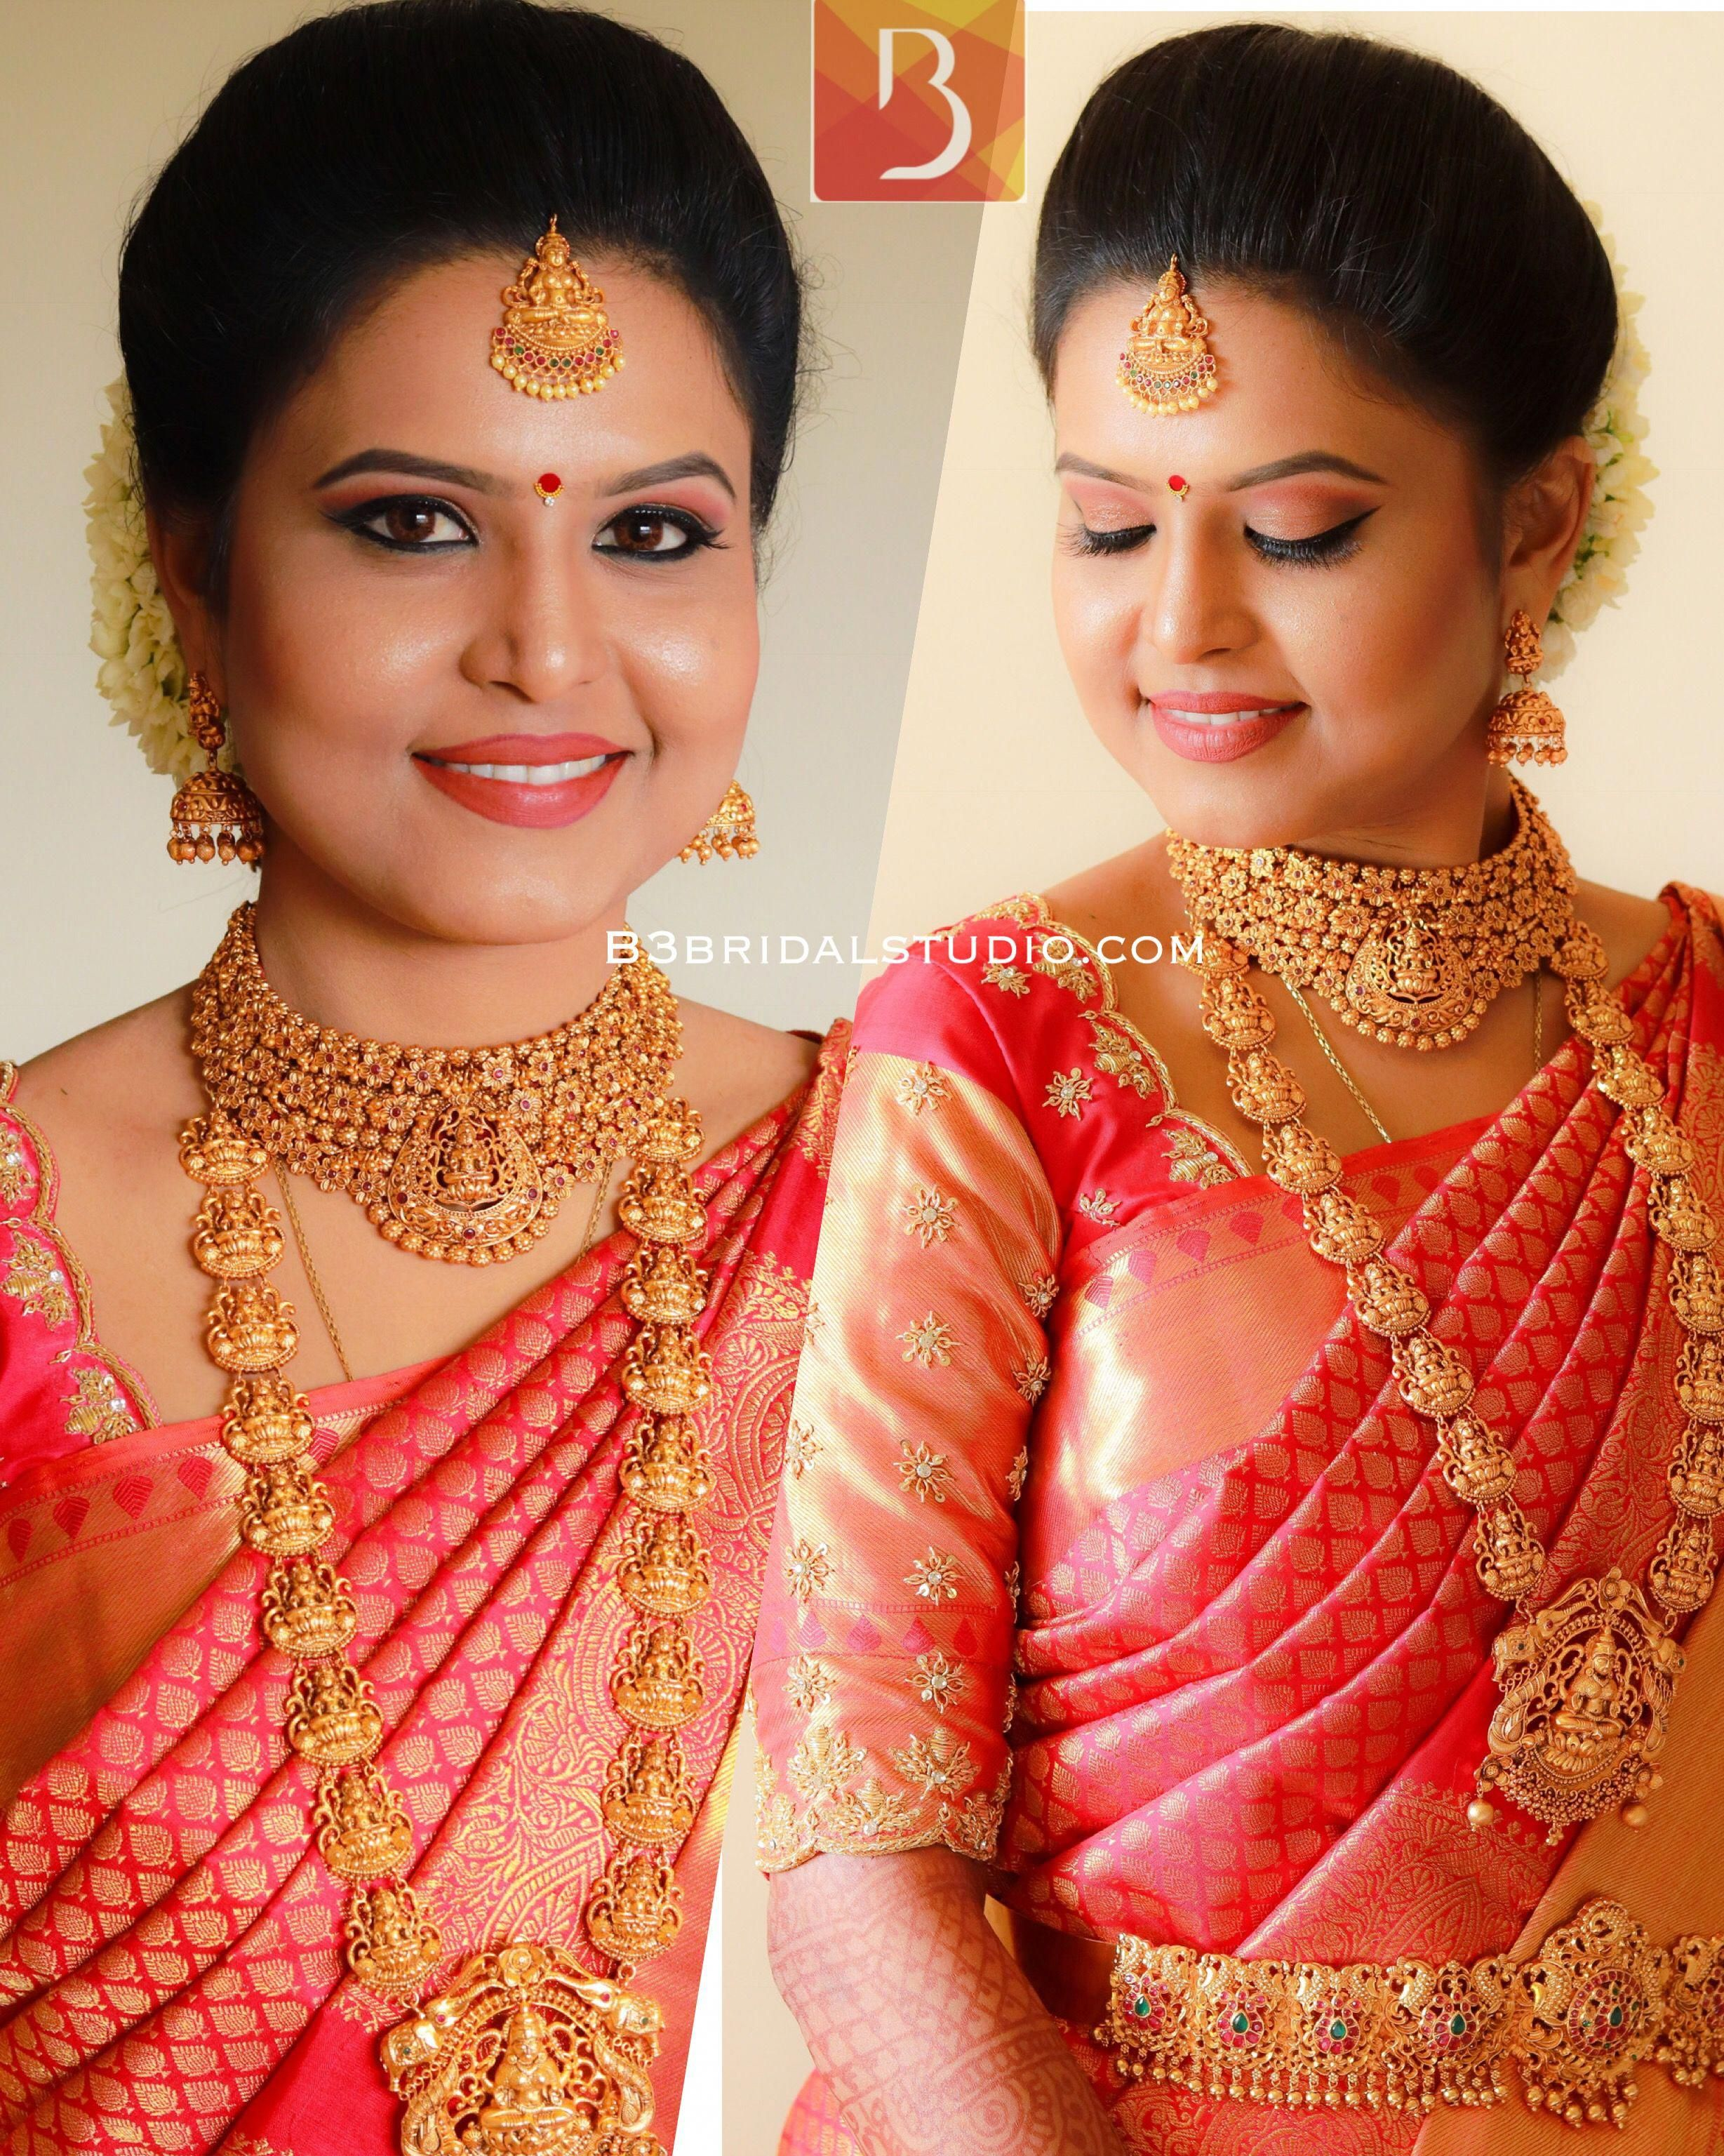 South Indian Bridal Makeup By Karthika B3bridalstudio Contact 9176664266 Bridaljewelleryenglish Indian Bridal Makeup Indian Bridal Bridal Jewellery Indian